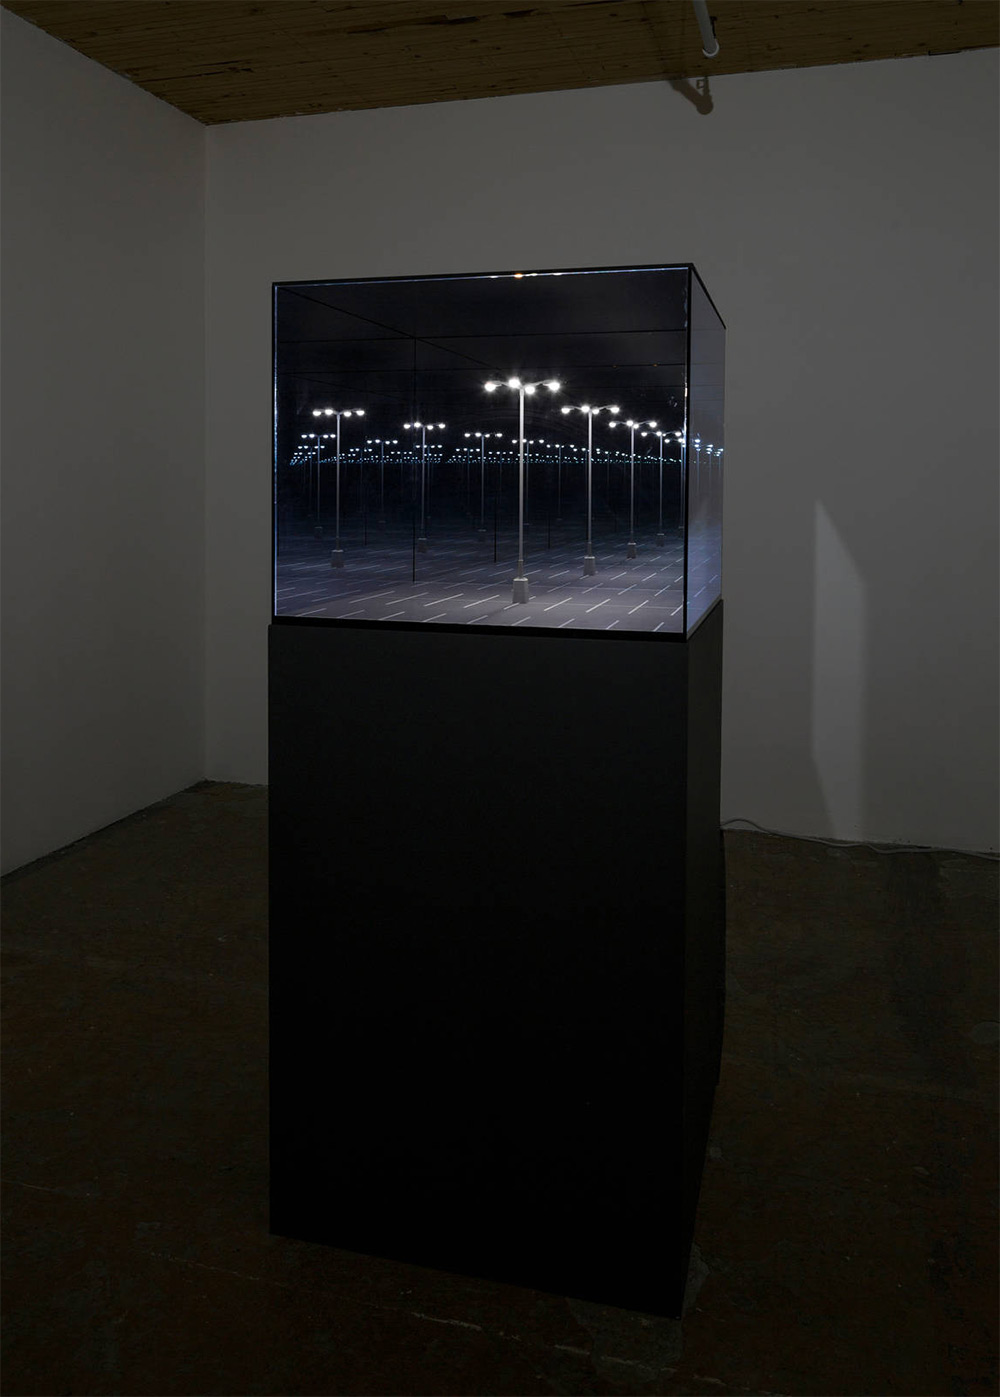 Guillaume Lachapelle S Mirrored Dioramas Create The